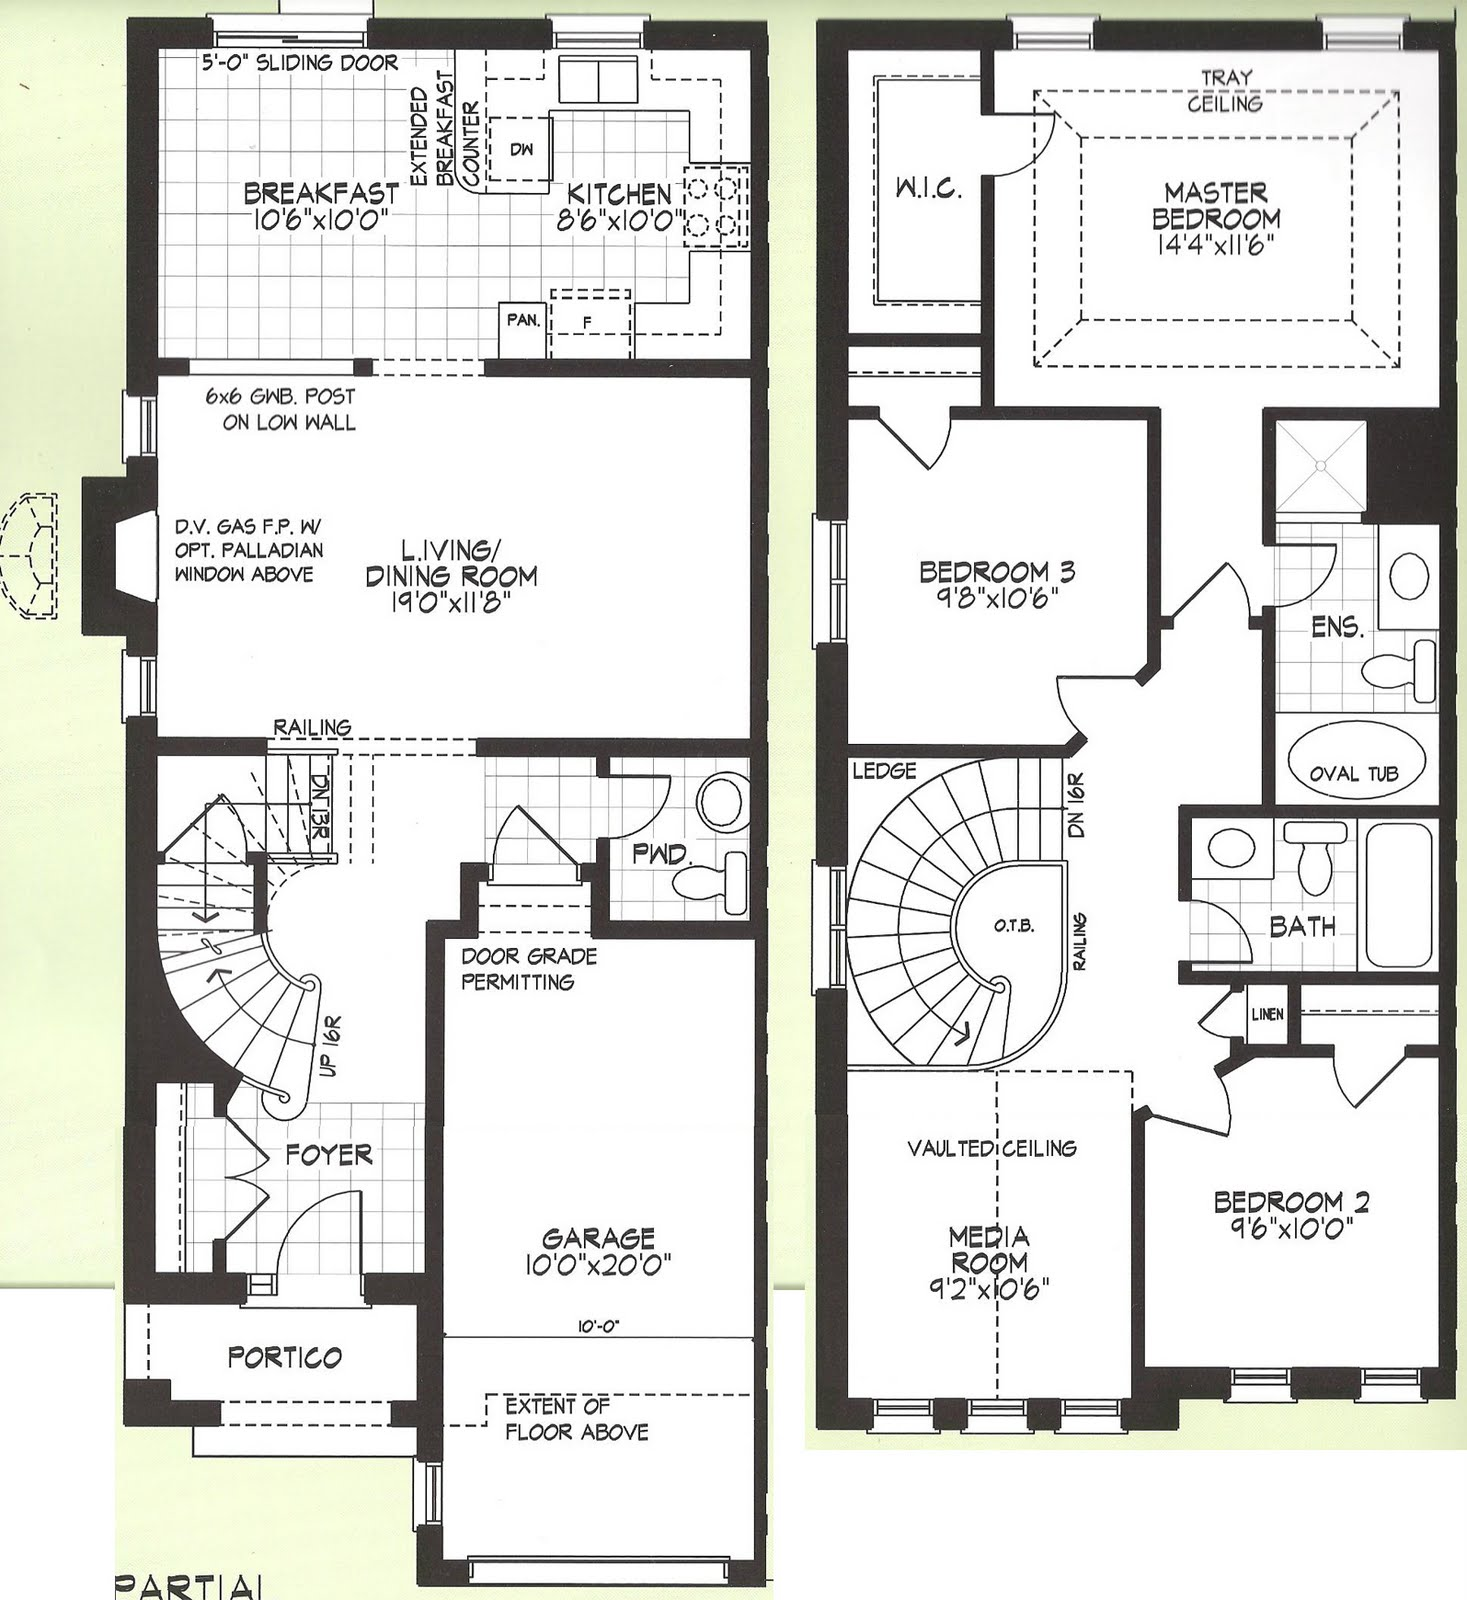 Eames house floor plan dimensions interior decorating ideas for Blueprint of a house with measurements